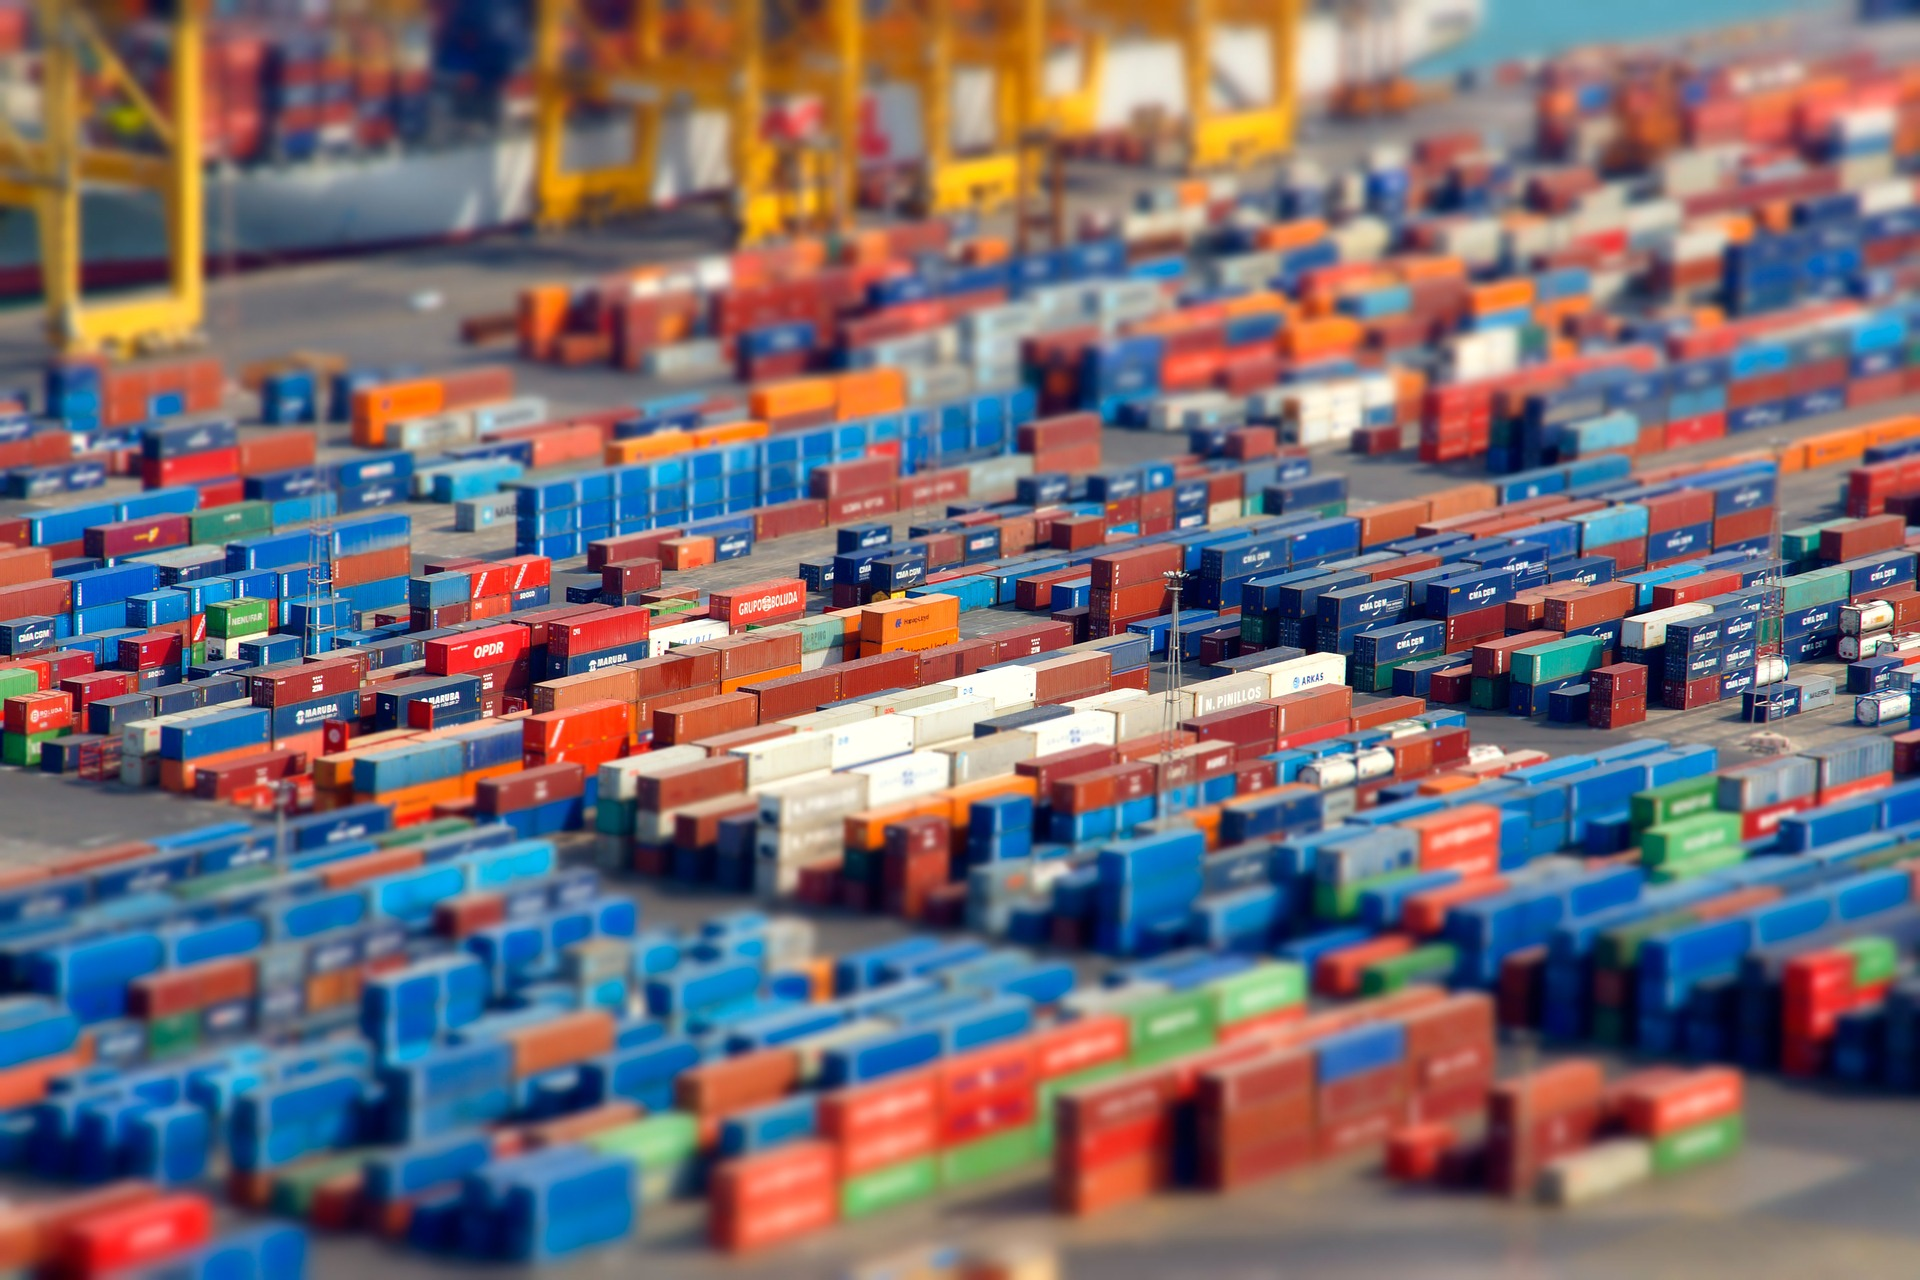 Linux-containers: isolation as a technological breakthrough